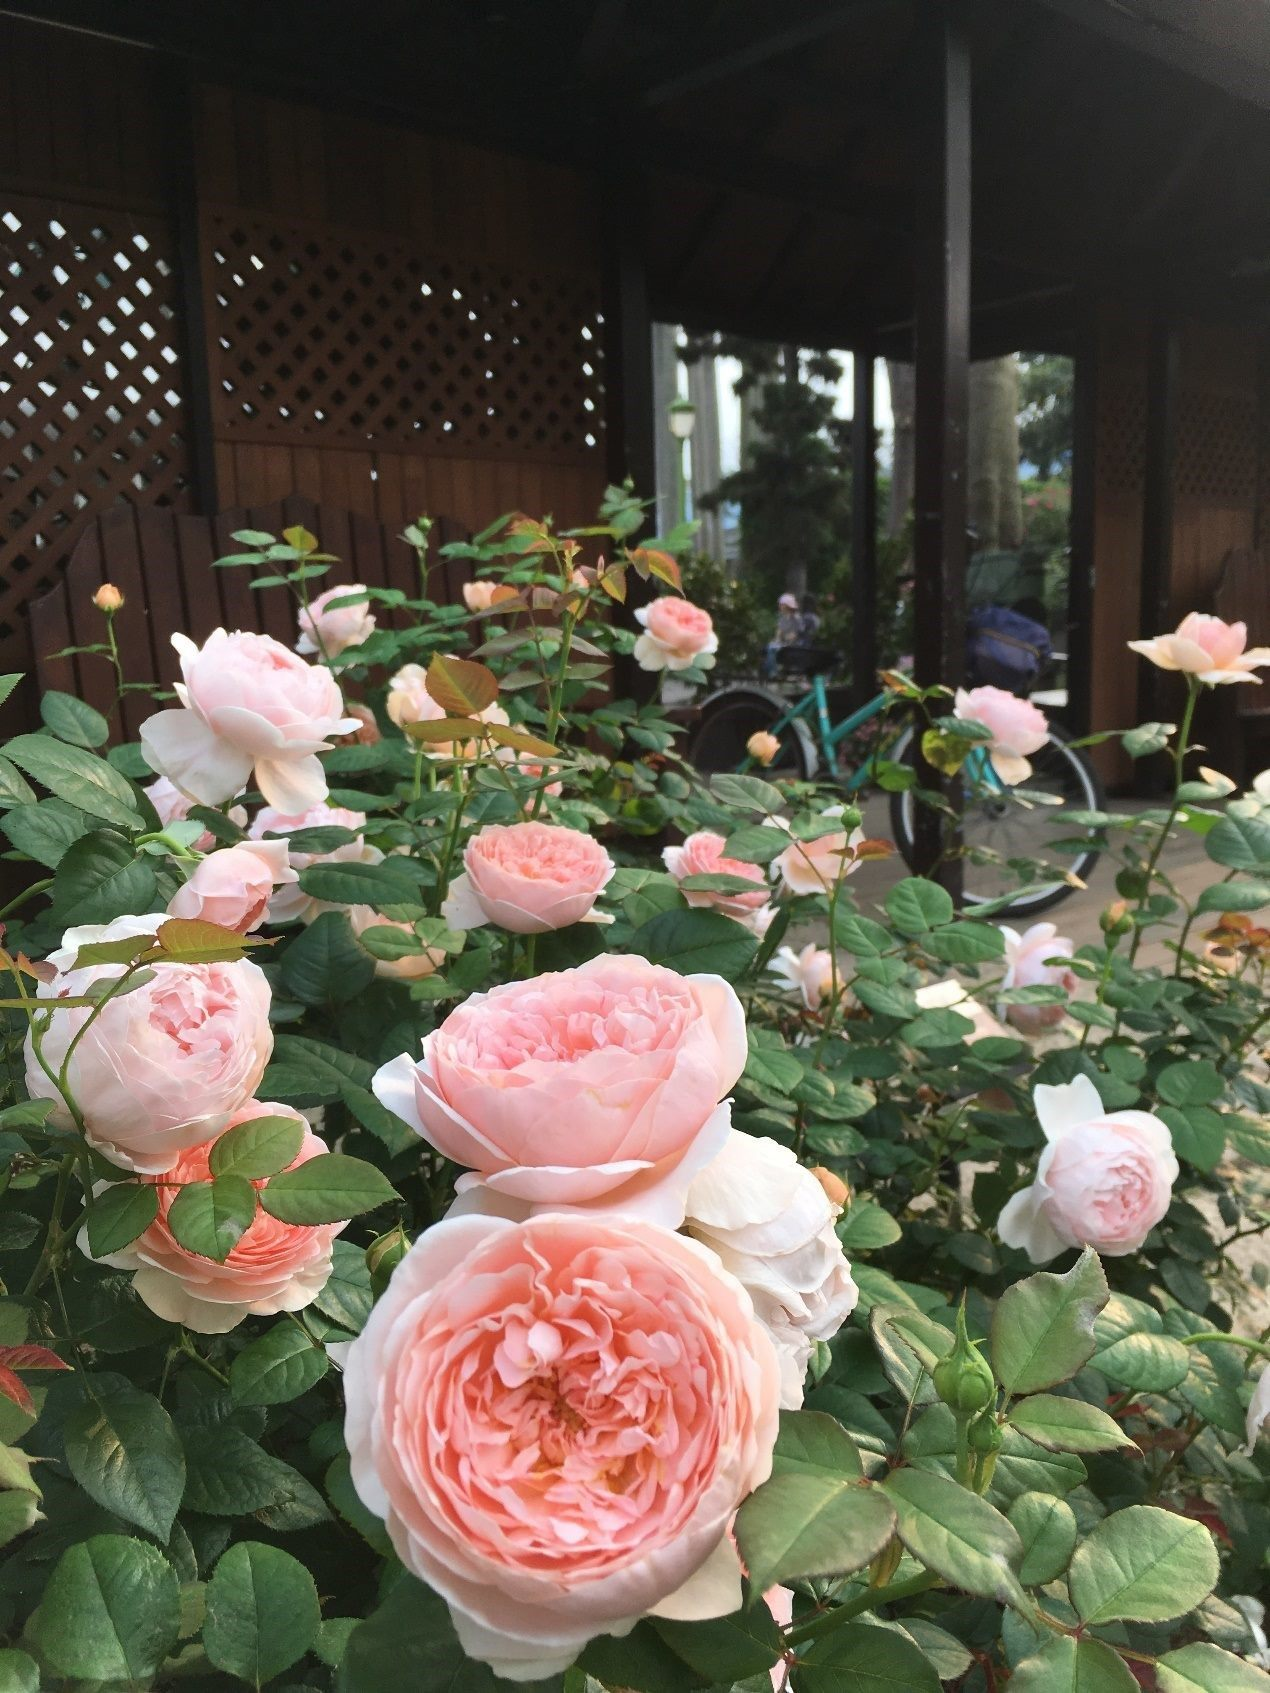 Take Time to Smell the Roses at Taipei Rose Garden